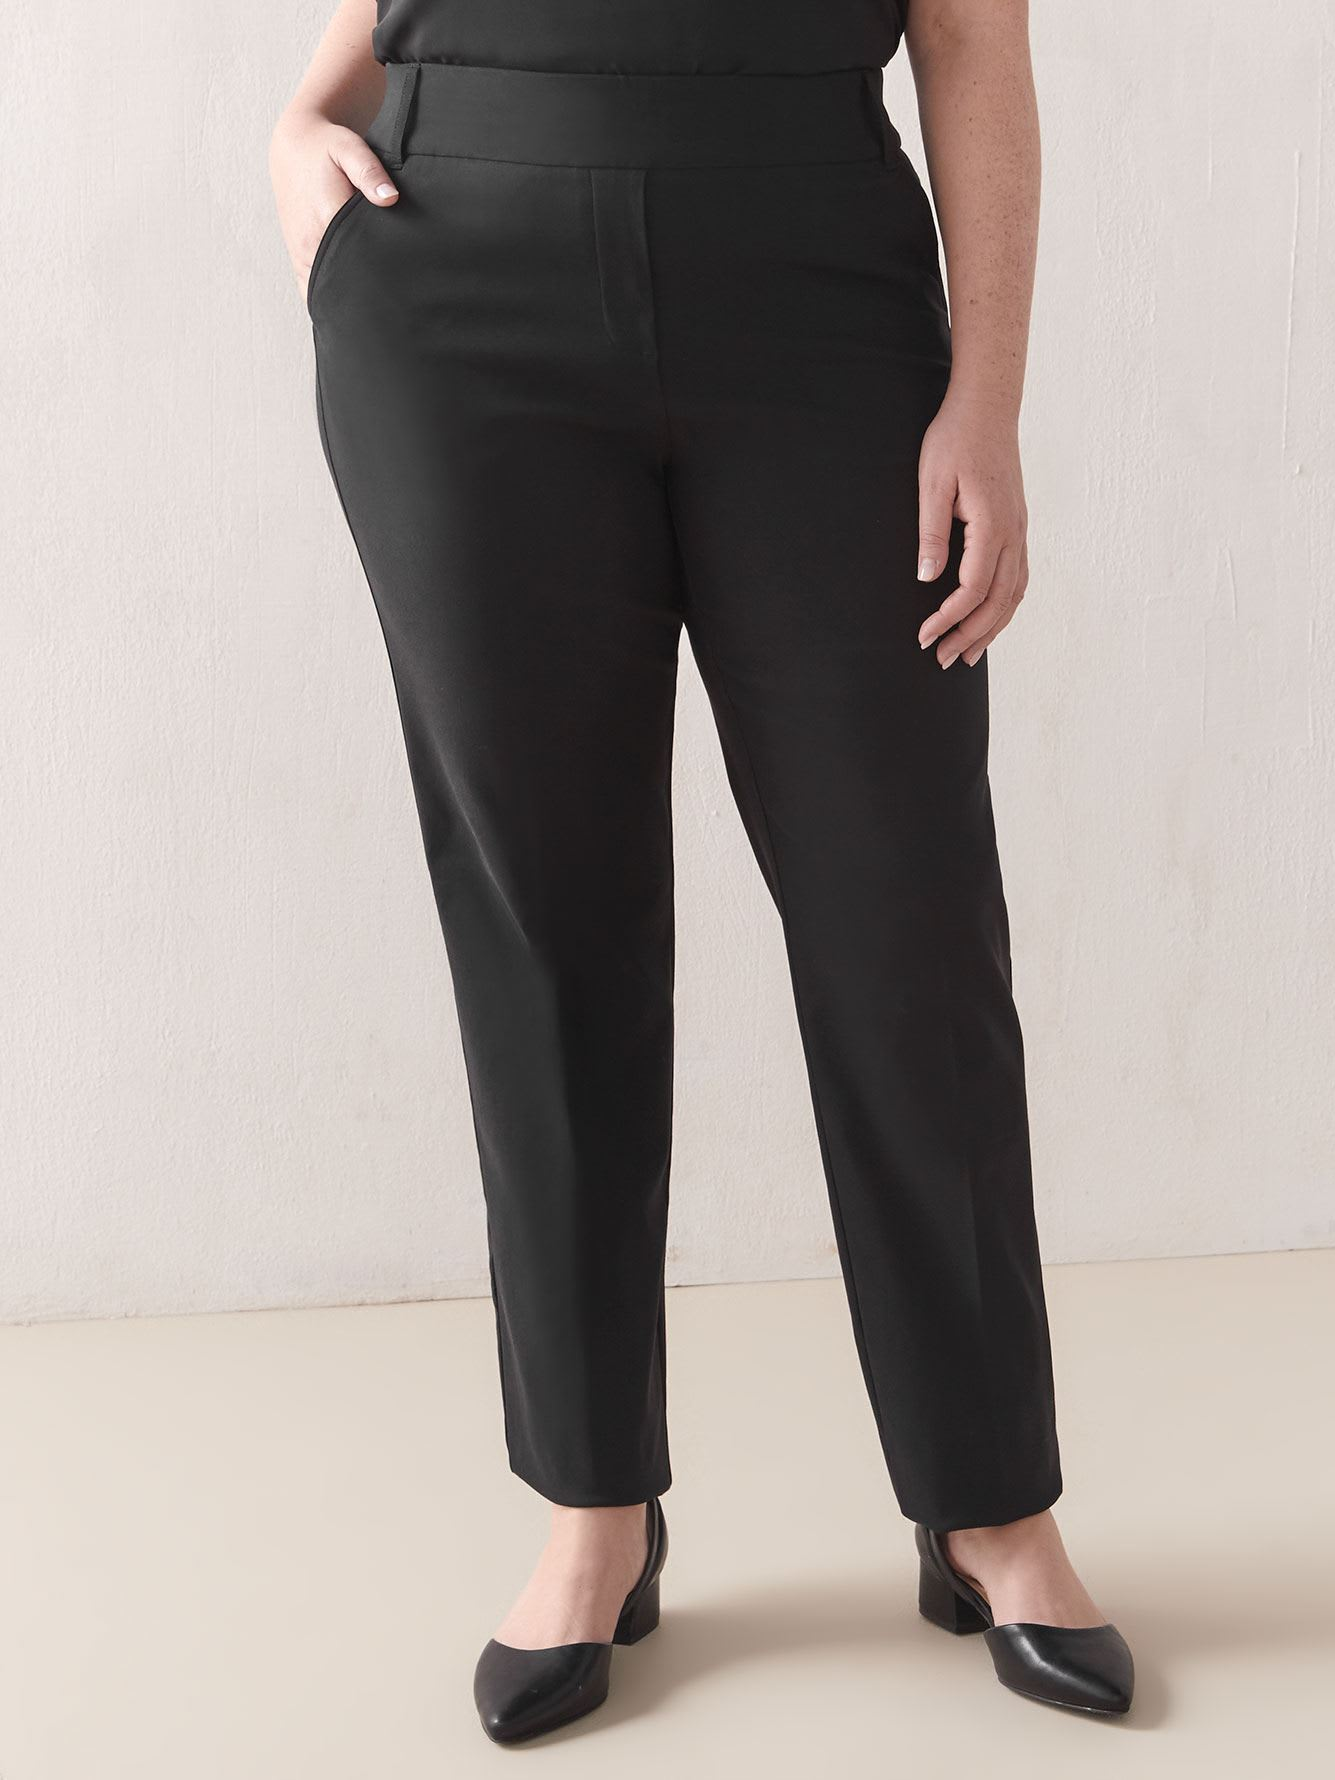 Grande, Pantalon droit Savvy- In Every Story